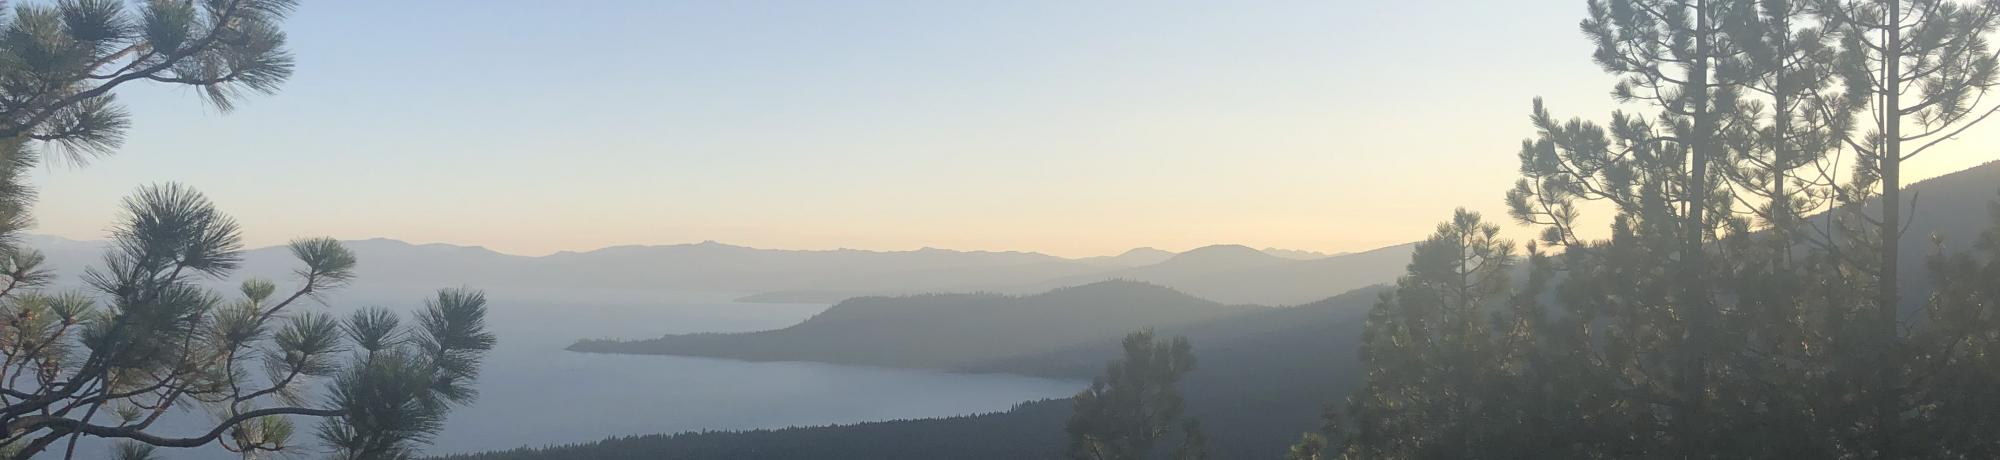 Image of the Lake Tahoe Basin with smoke